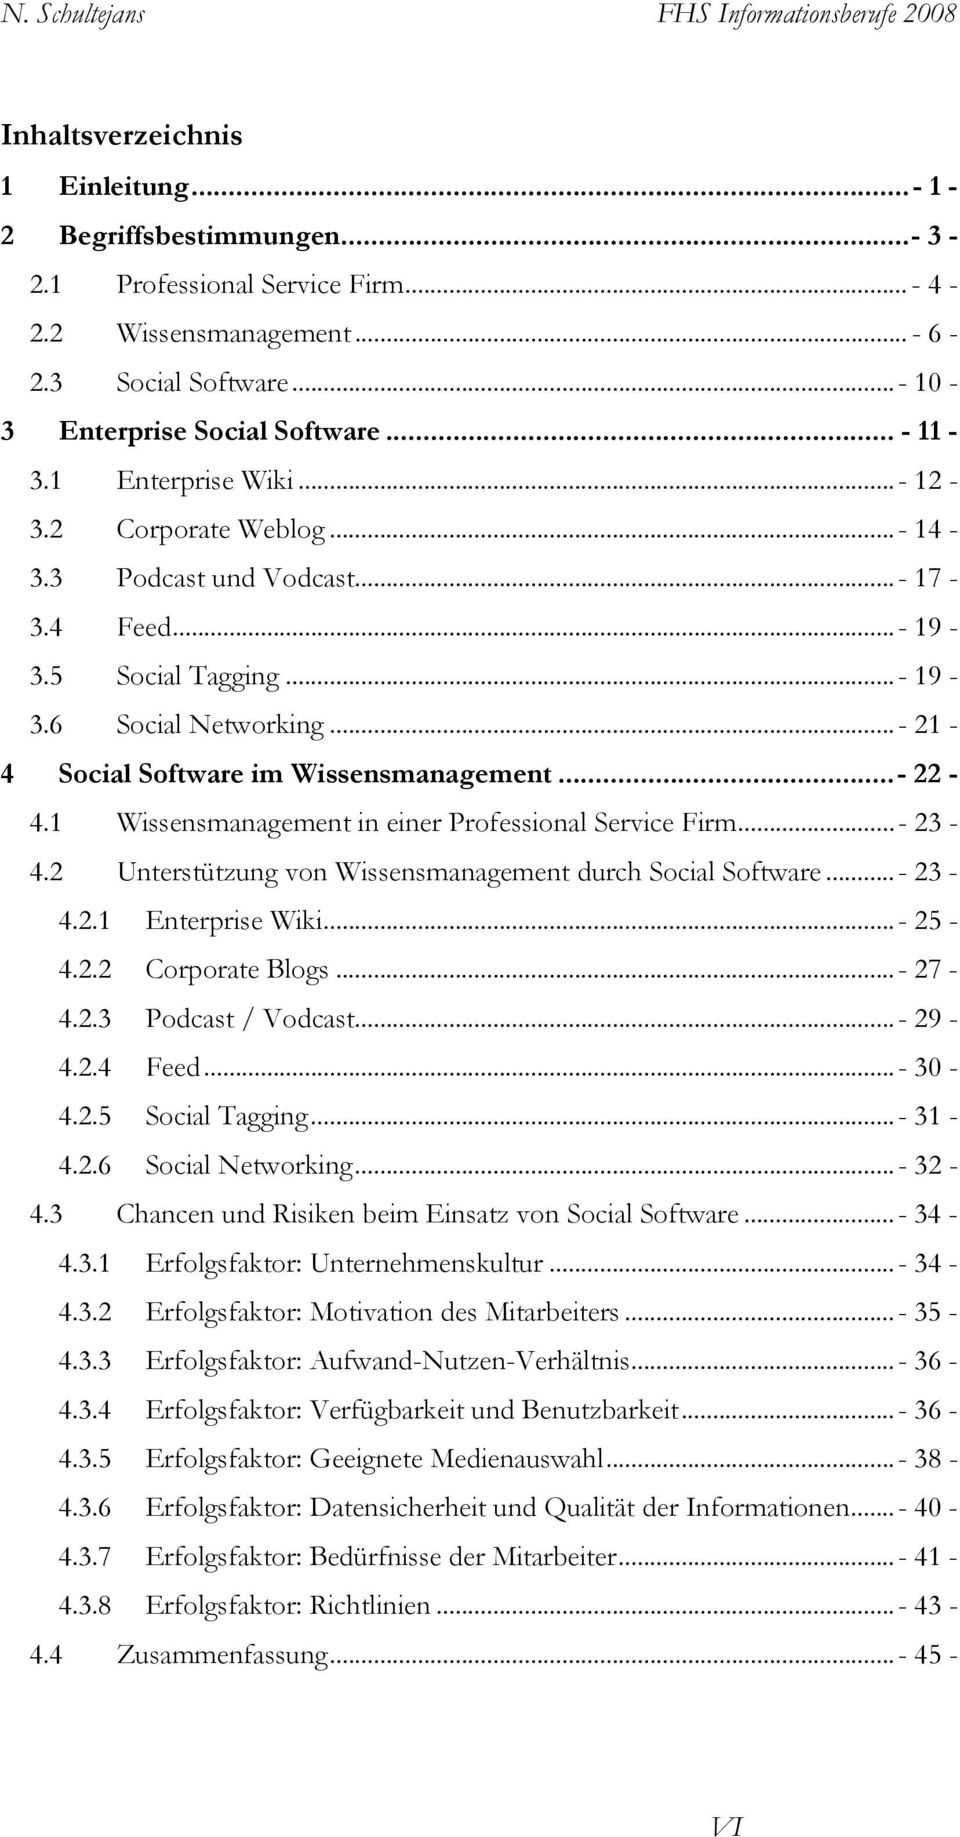 ..- 22-4.1 Wissensmanagement in einer Professional Service Firm...- 23-4.2 Unterstützung von Wissensmanagement durch Social Software...- 23-4.2.1 Enterprise Wiki...- 25-4.2.2 Corporate Blogs...- 27-4.